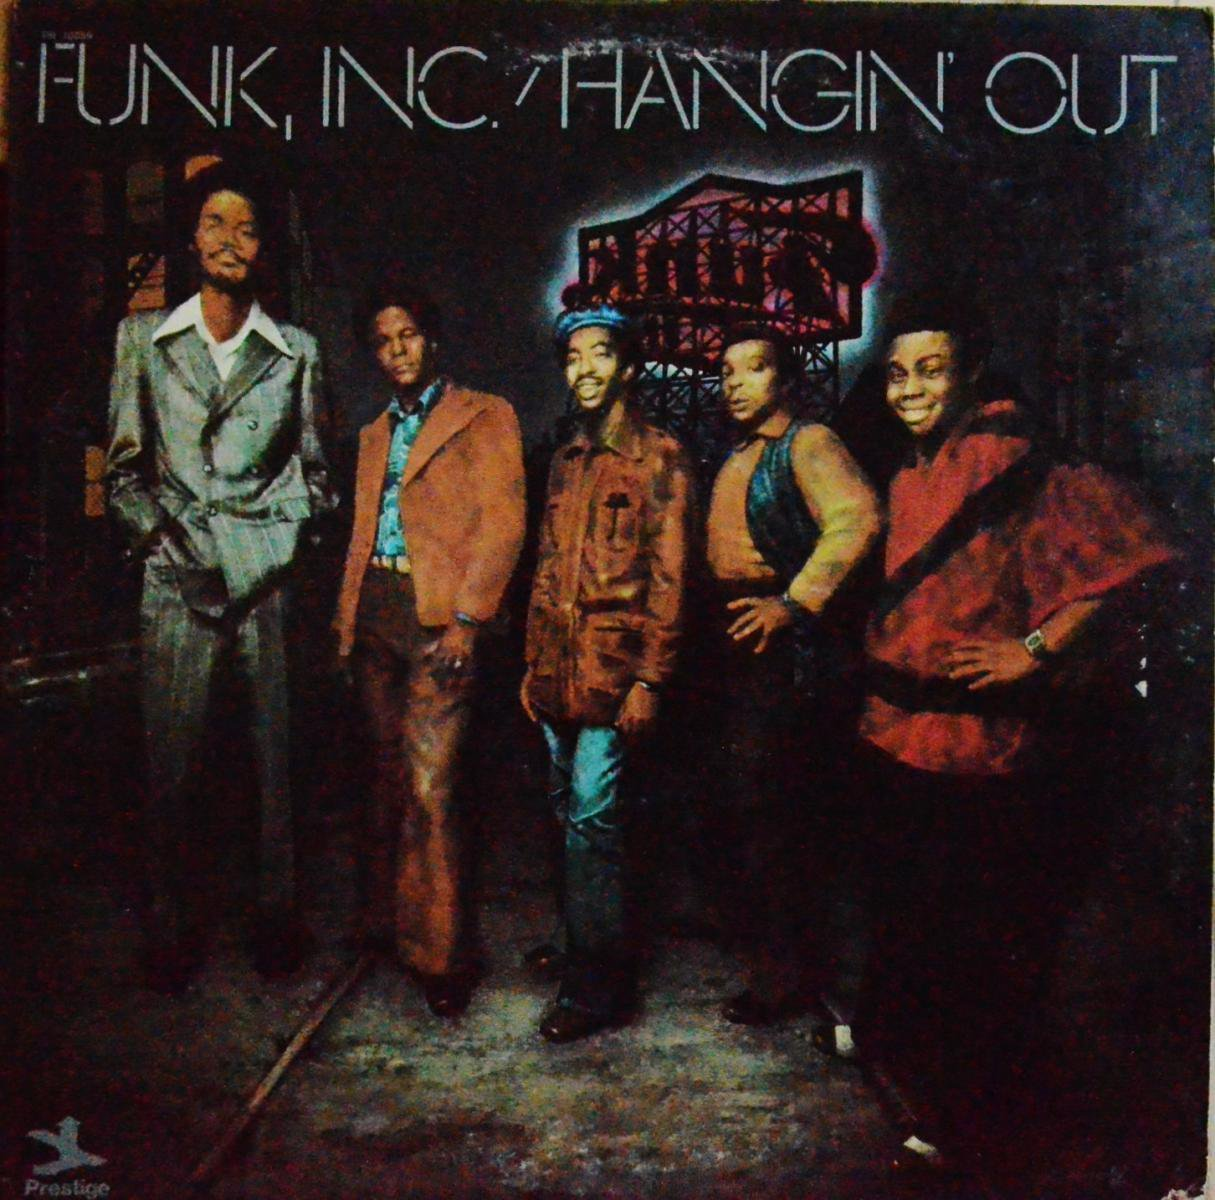 FUNK,INC. / HANGIN' OUT (LP)